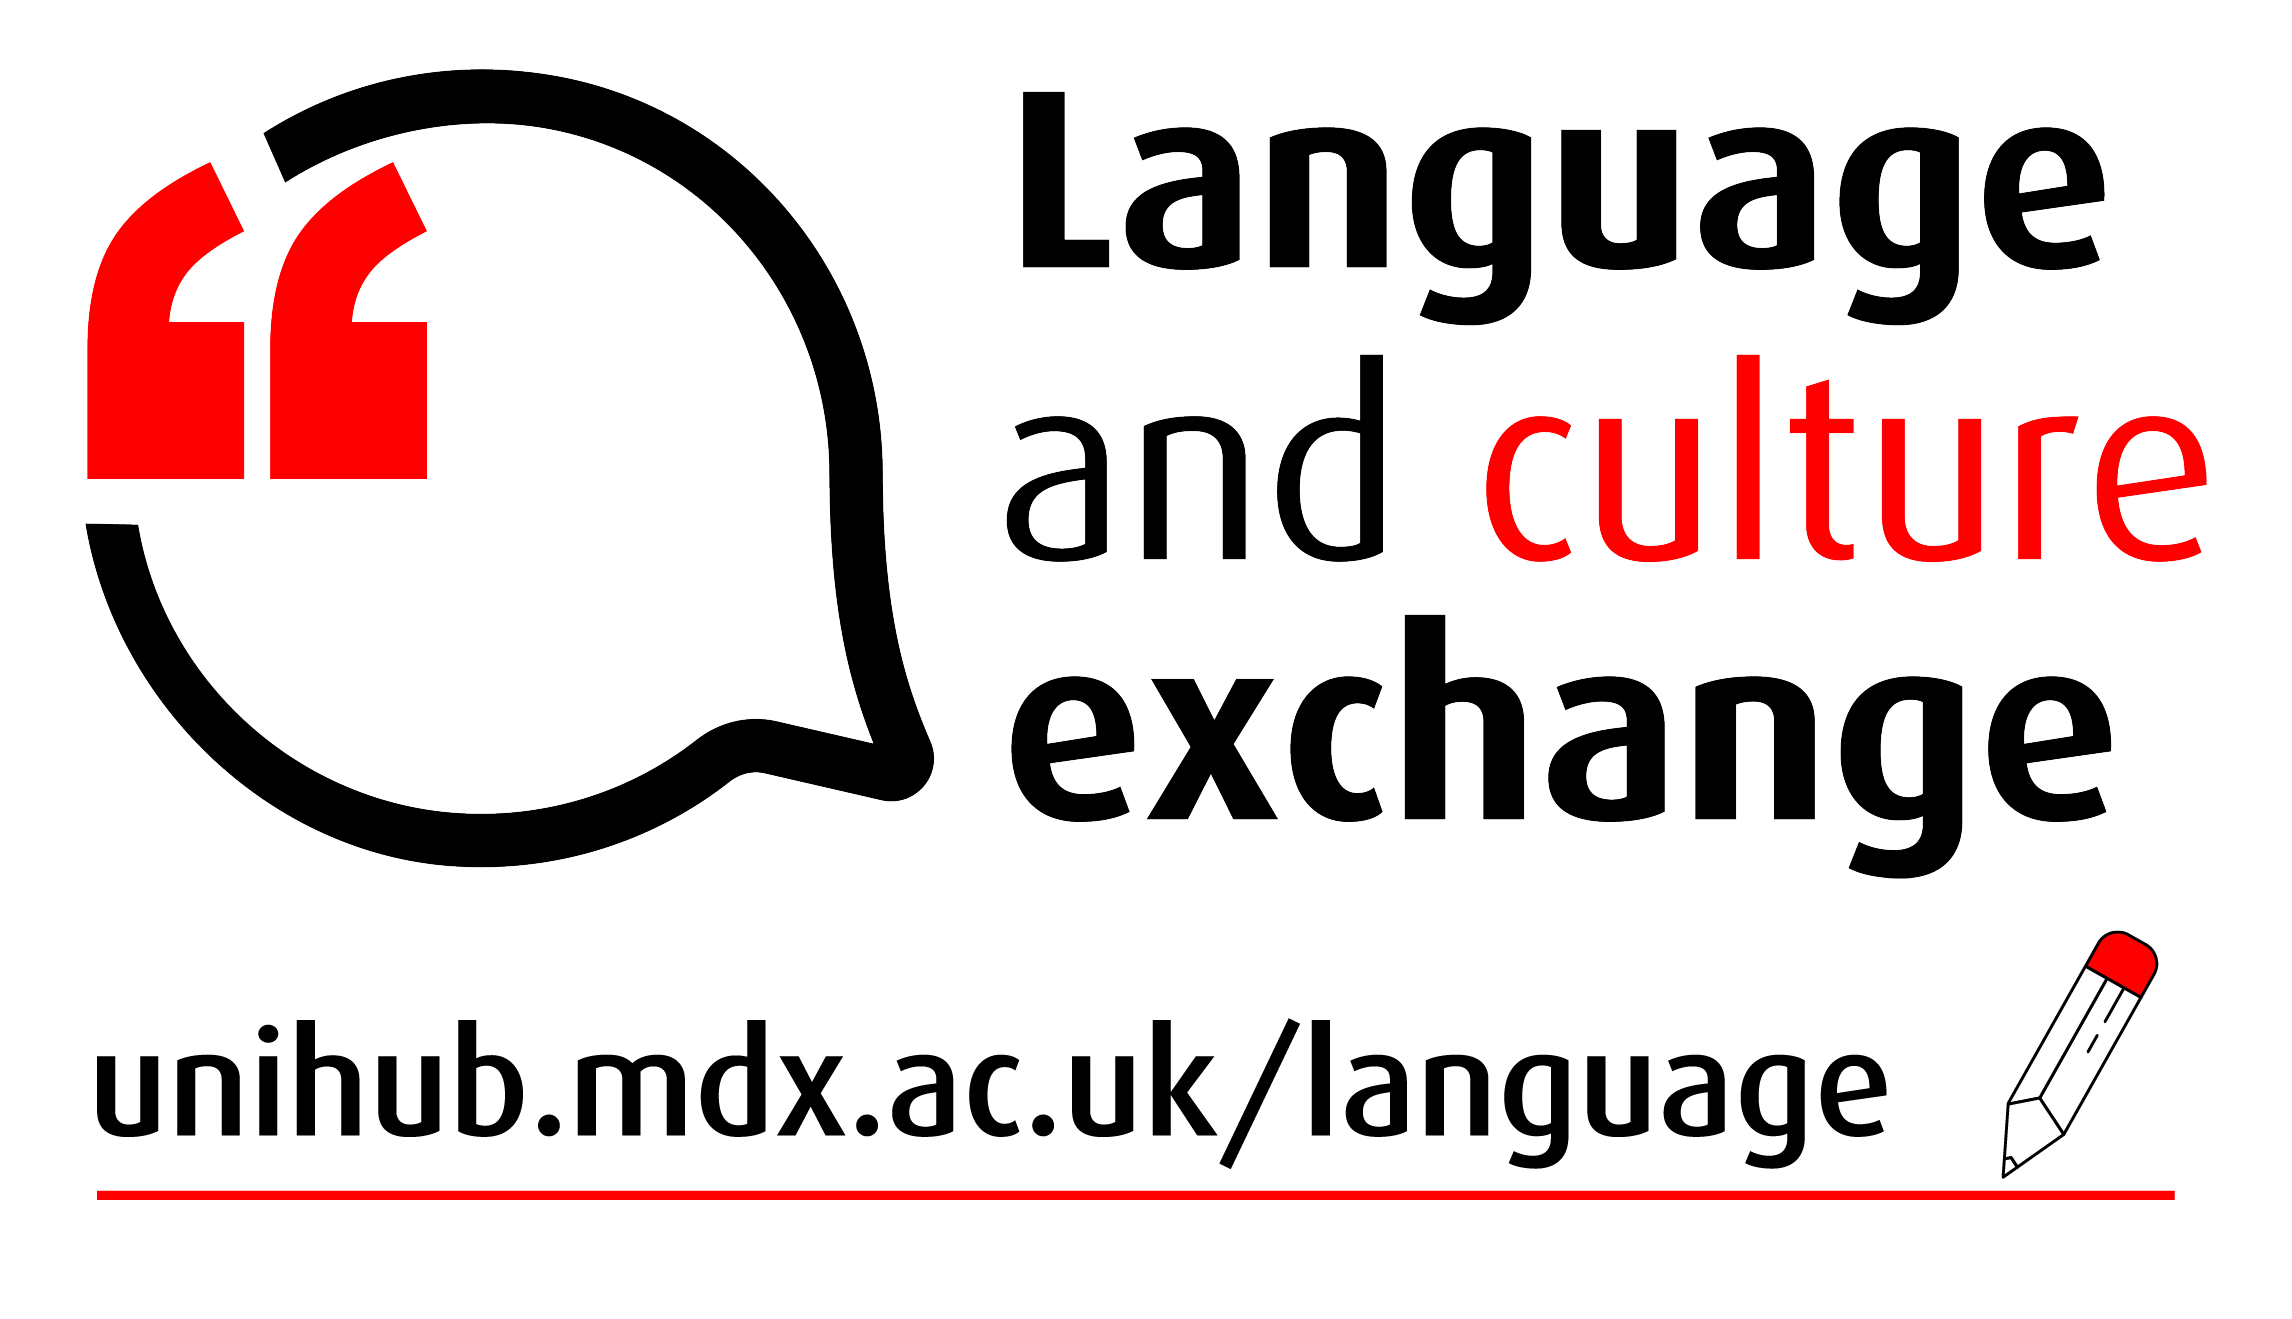 Langauge and Culture Exchange Logo image